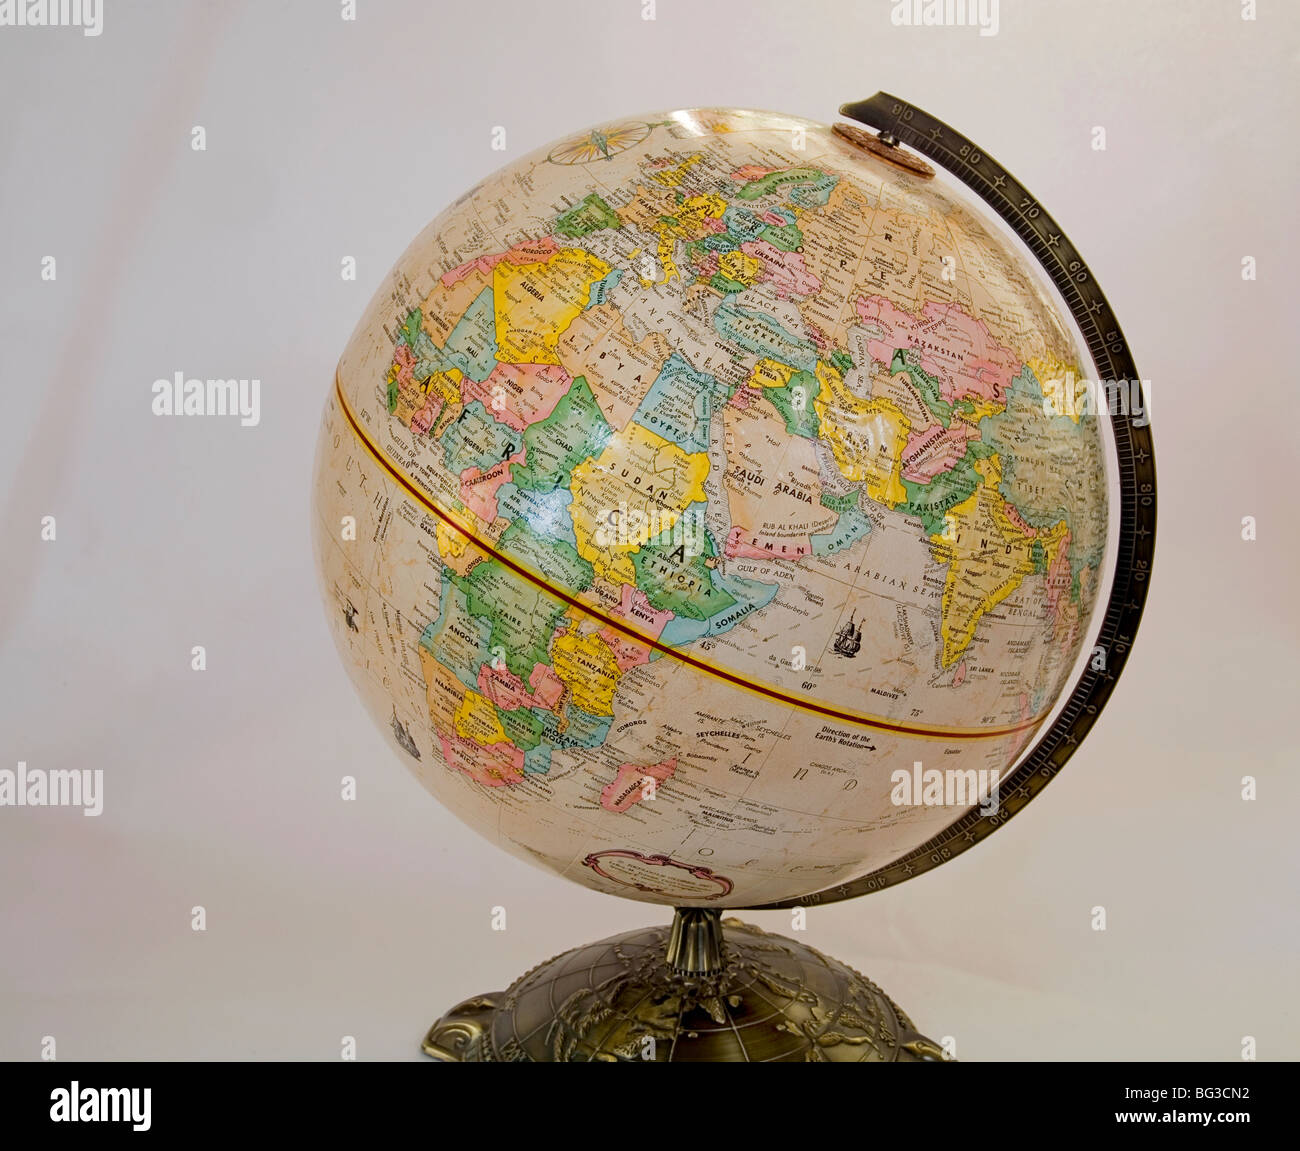 World Globe Globe Earth World Map of the World geography - Stock Image